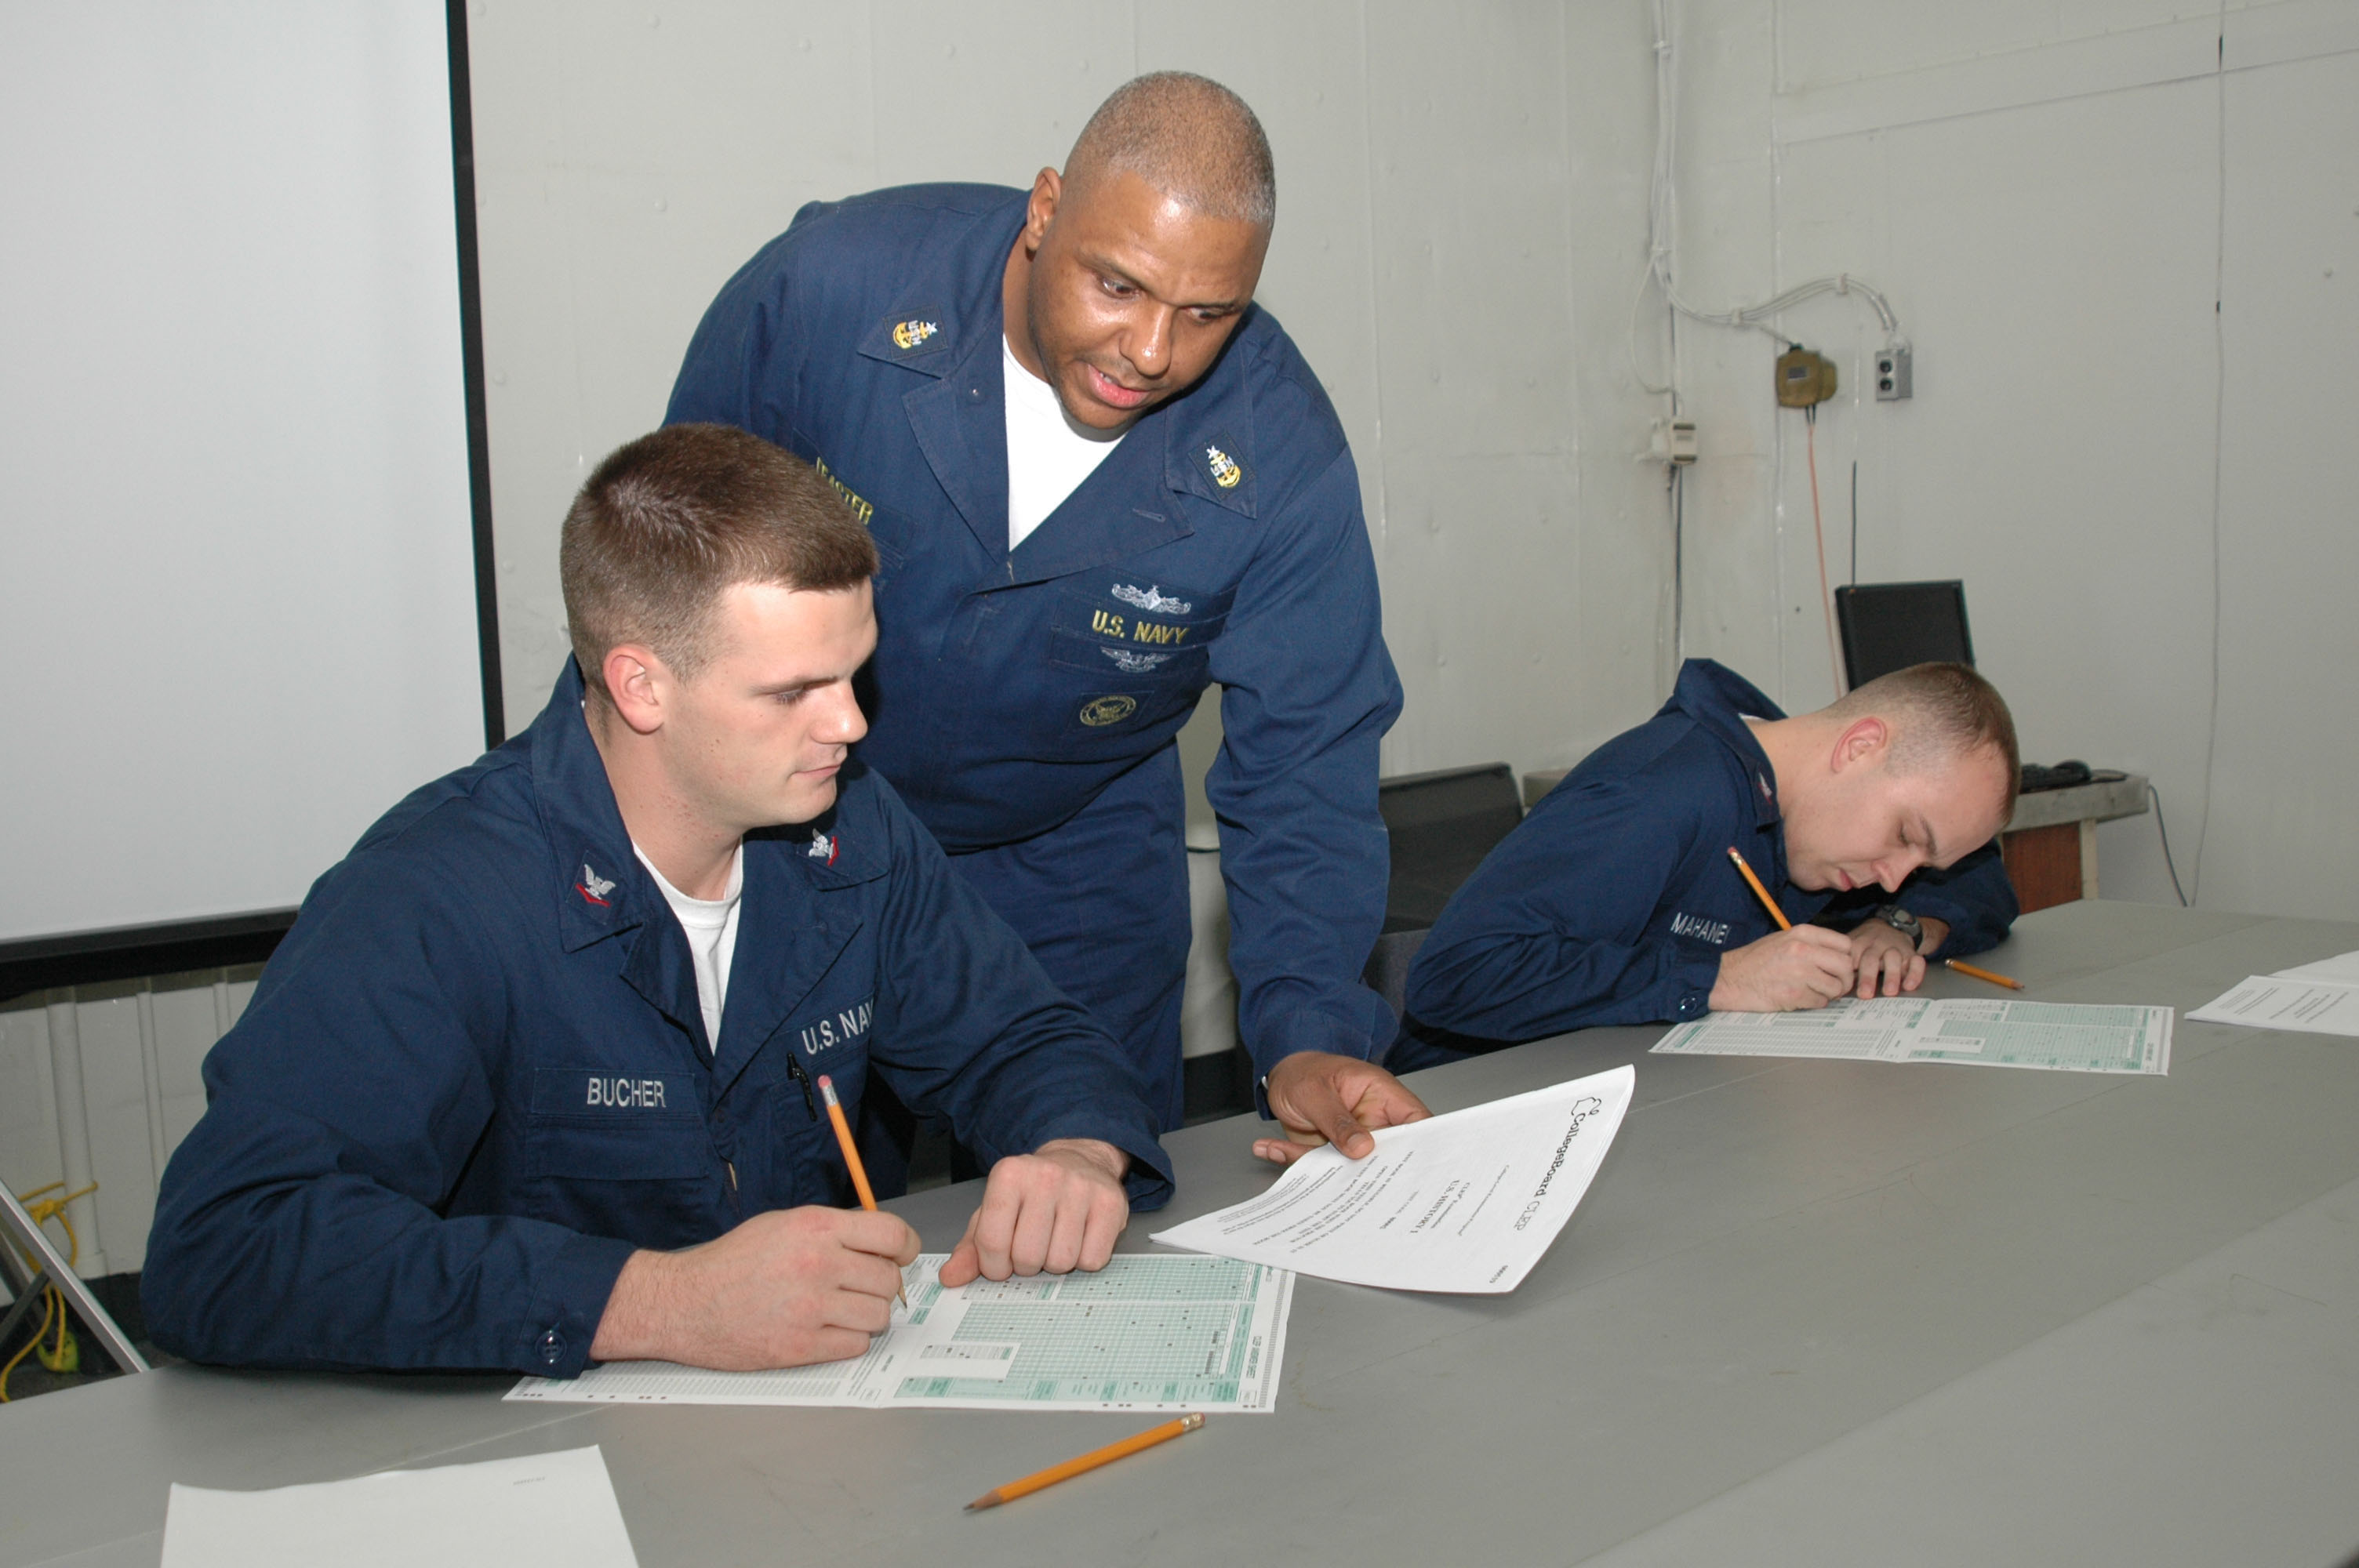 File:US Navy 061024-N-4207M-012 Senior Chief Navy Career counselor ...